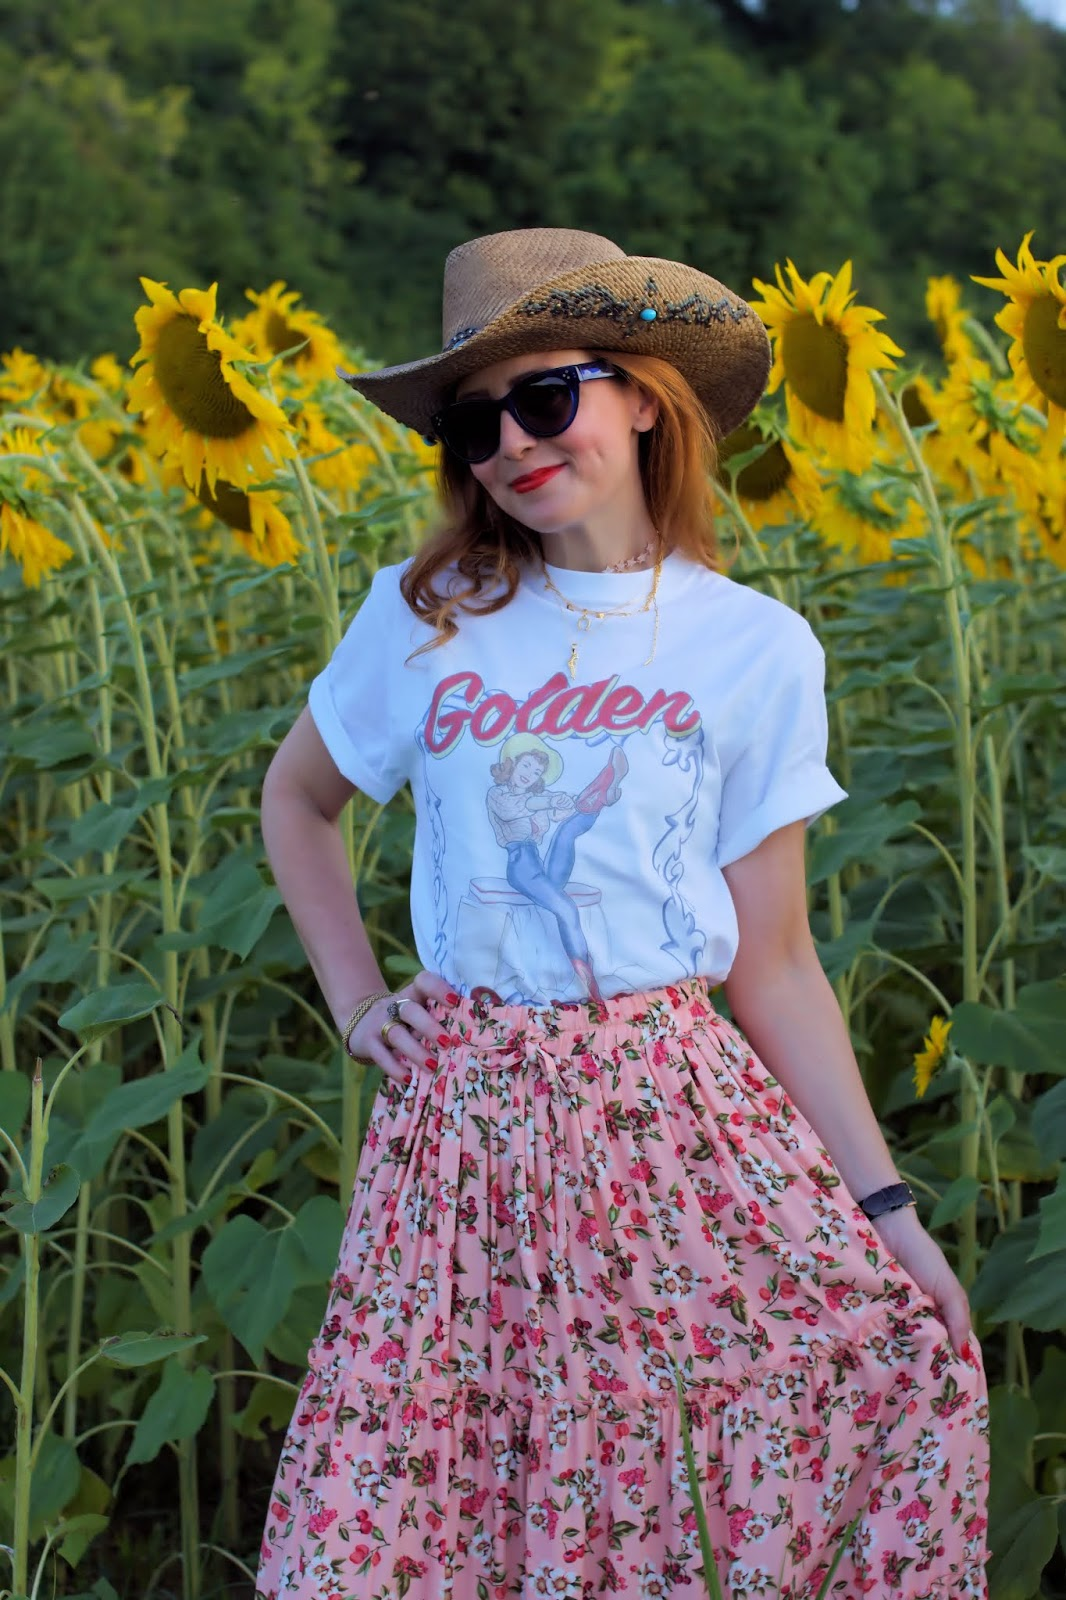 Golden Goose Pin Up t-shirt, country style on Fashion and Cookies fashion blog, fashion blogger style